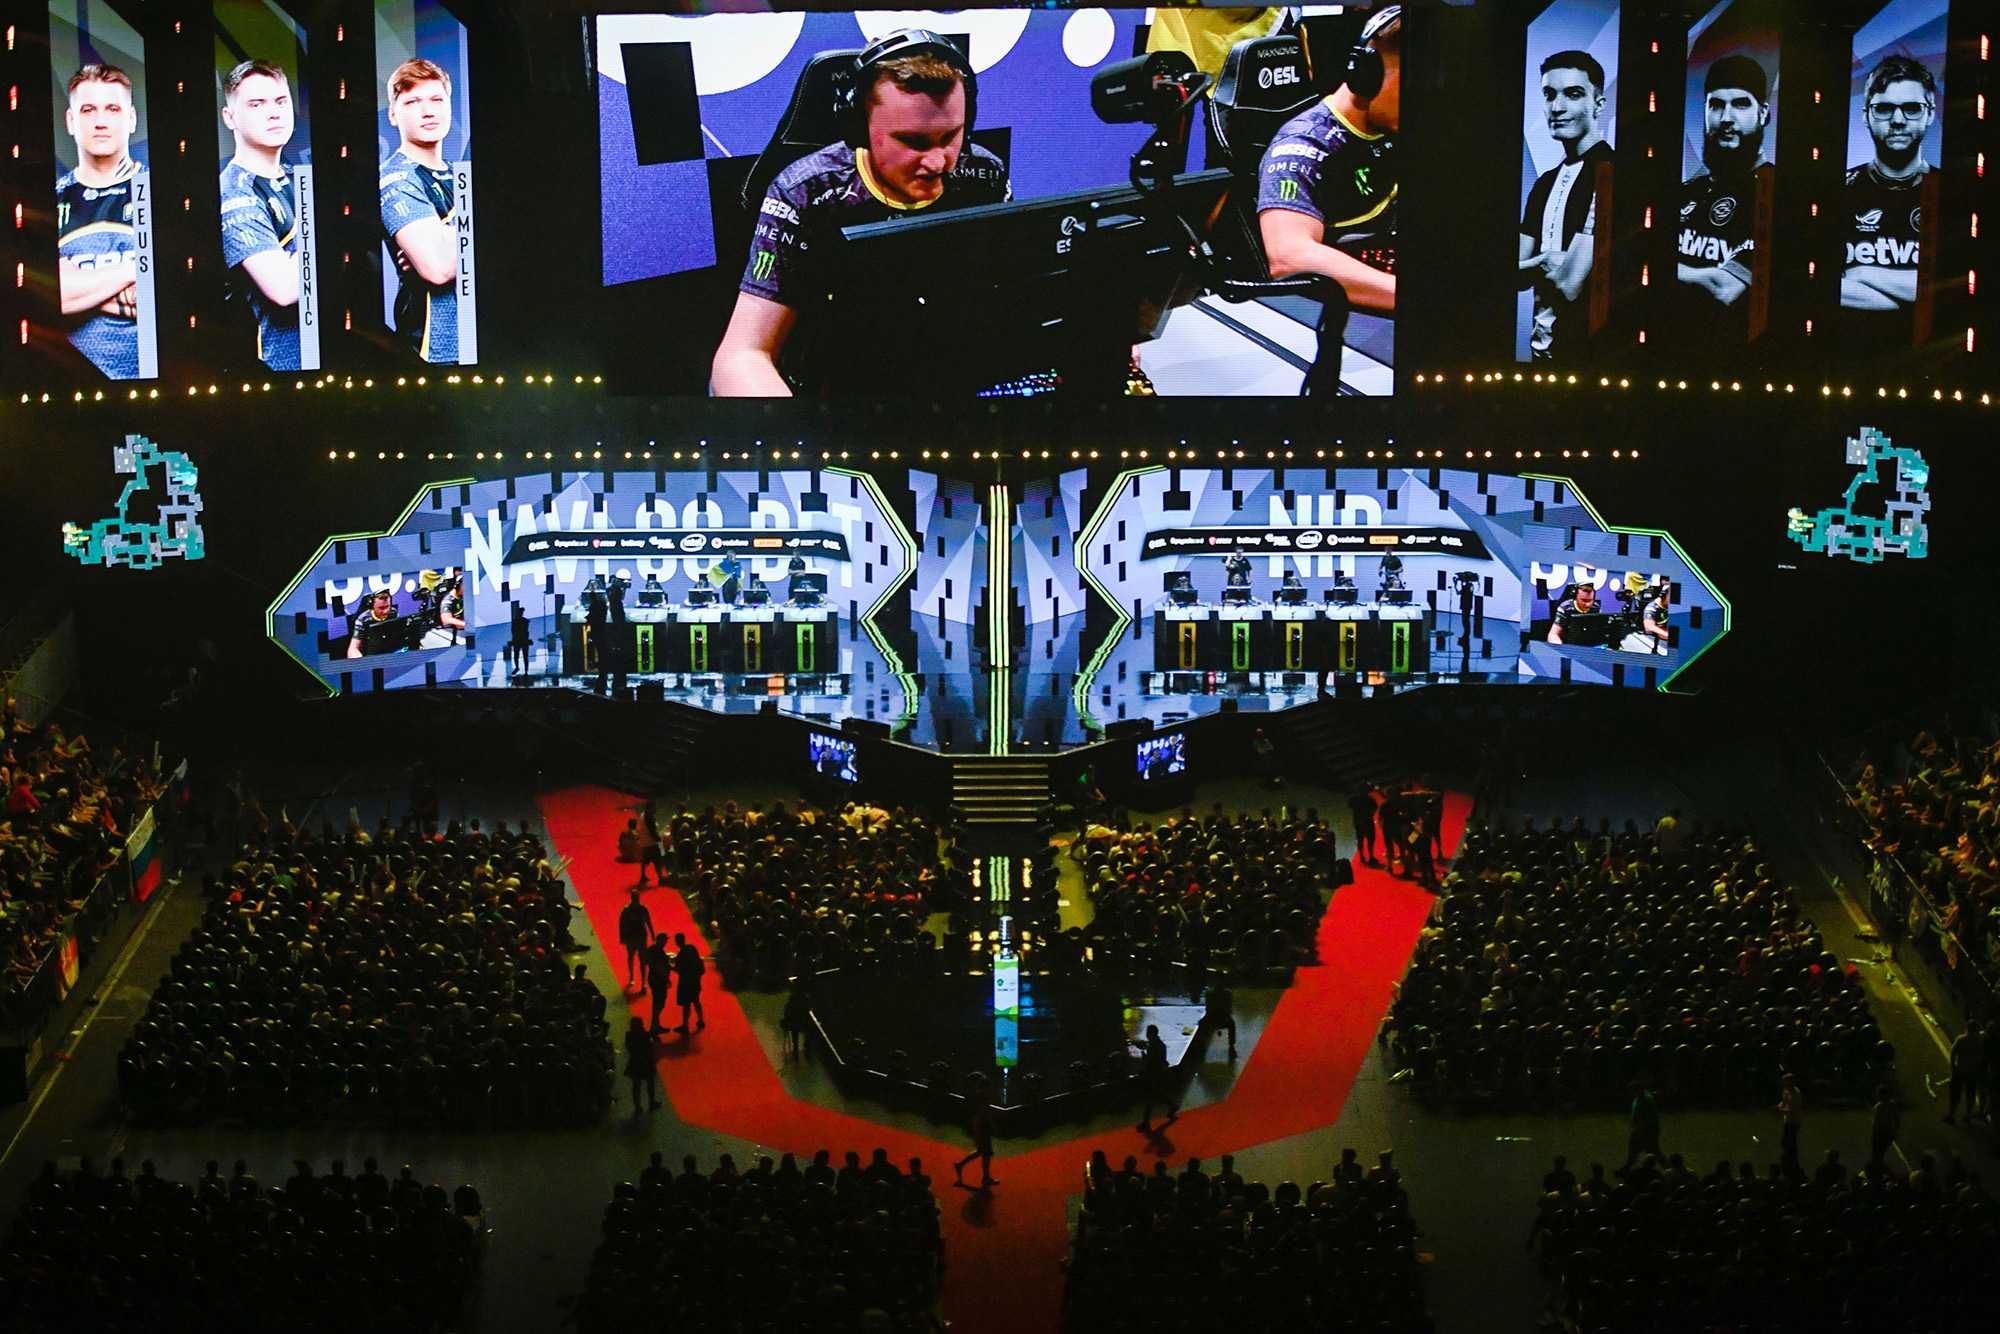 Tim bersaing selama turnamen video game ESL ONE Counter-Strike di Cologne, Jerman pada 2019.